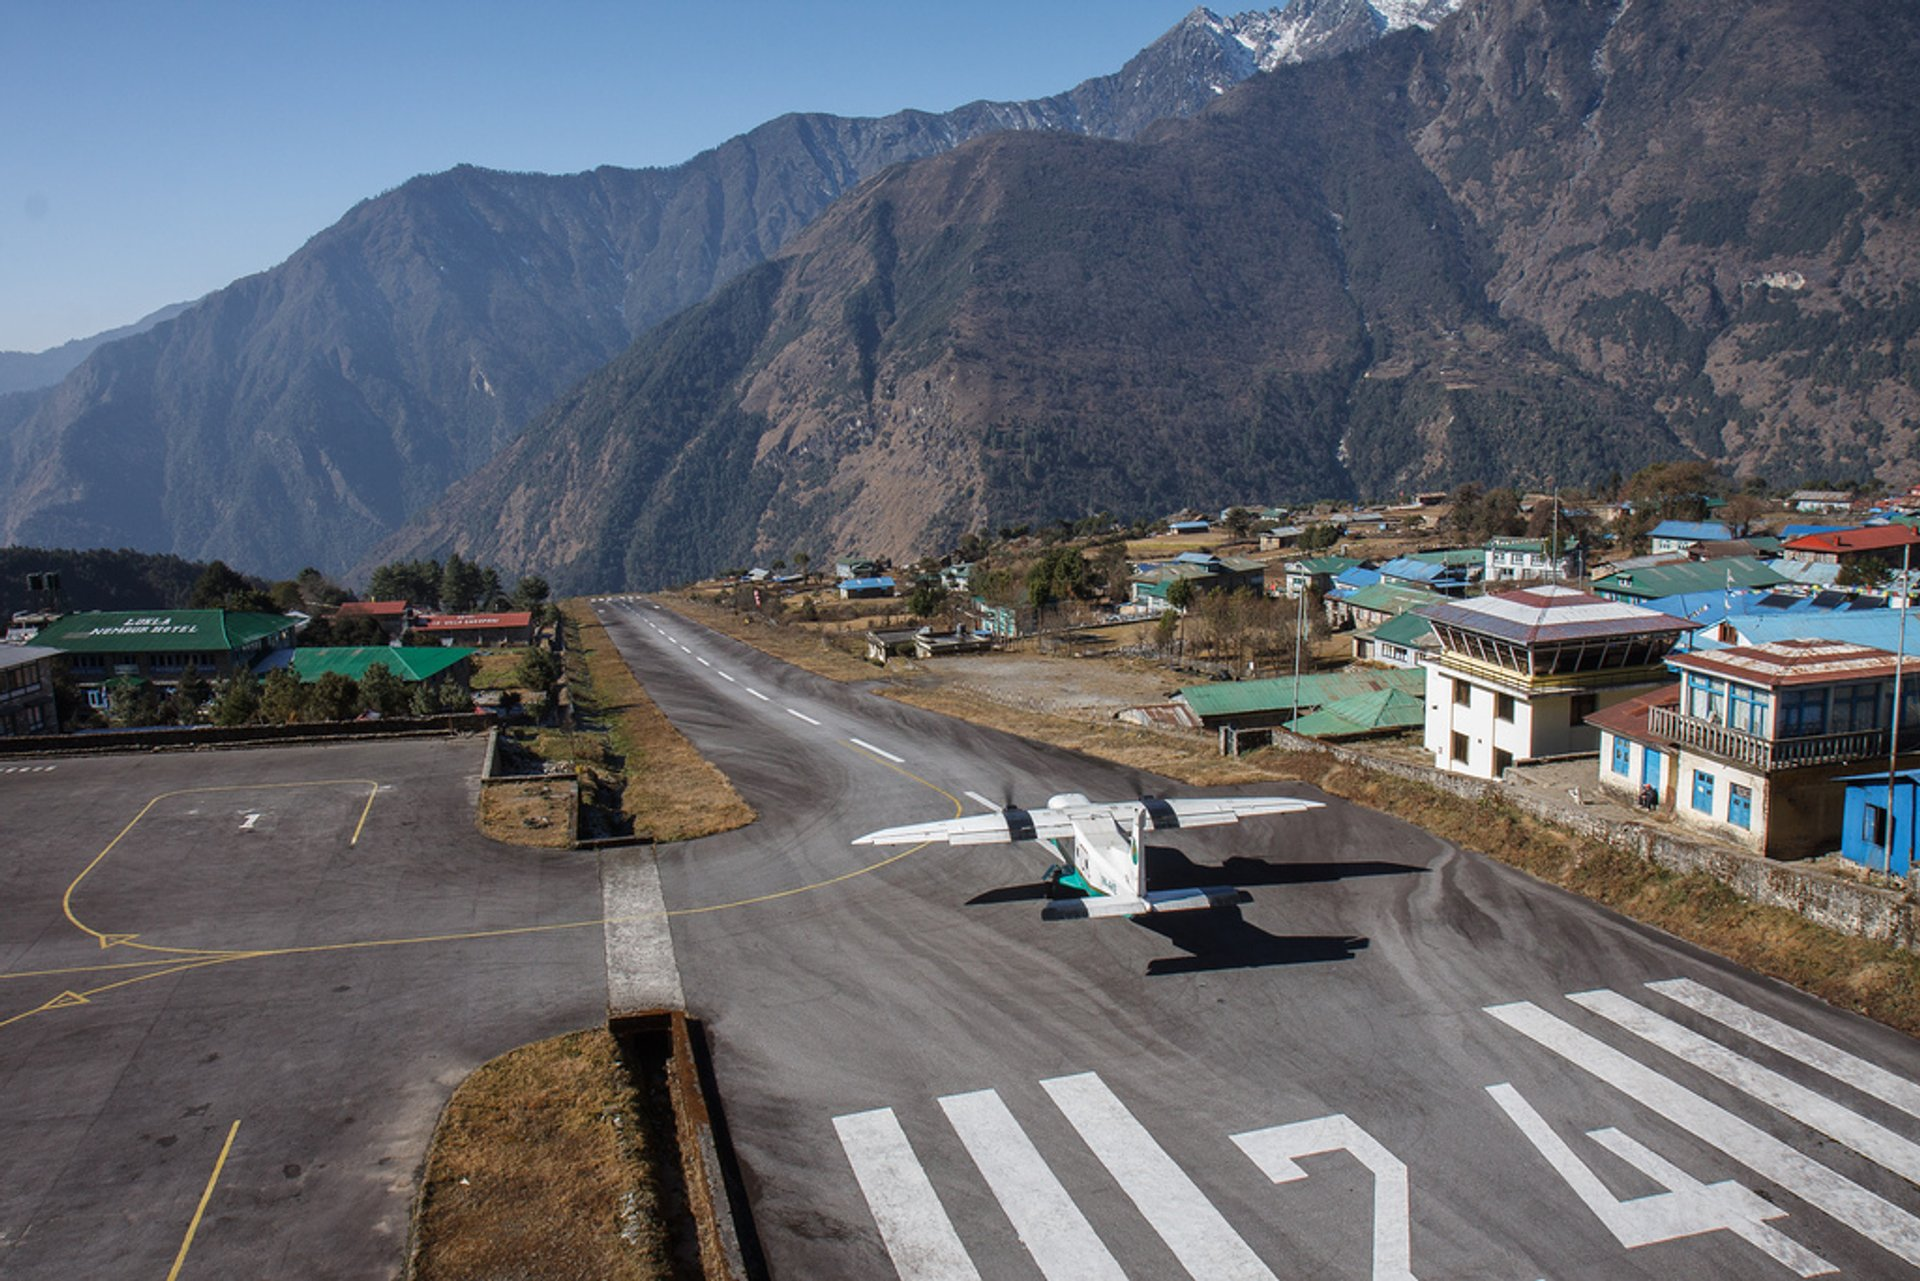 Lukla Tenzing–Hillary Airport in Nepal 2020 - Best Time